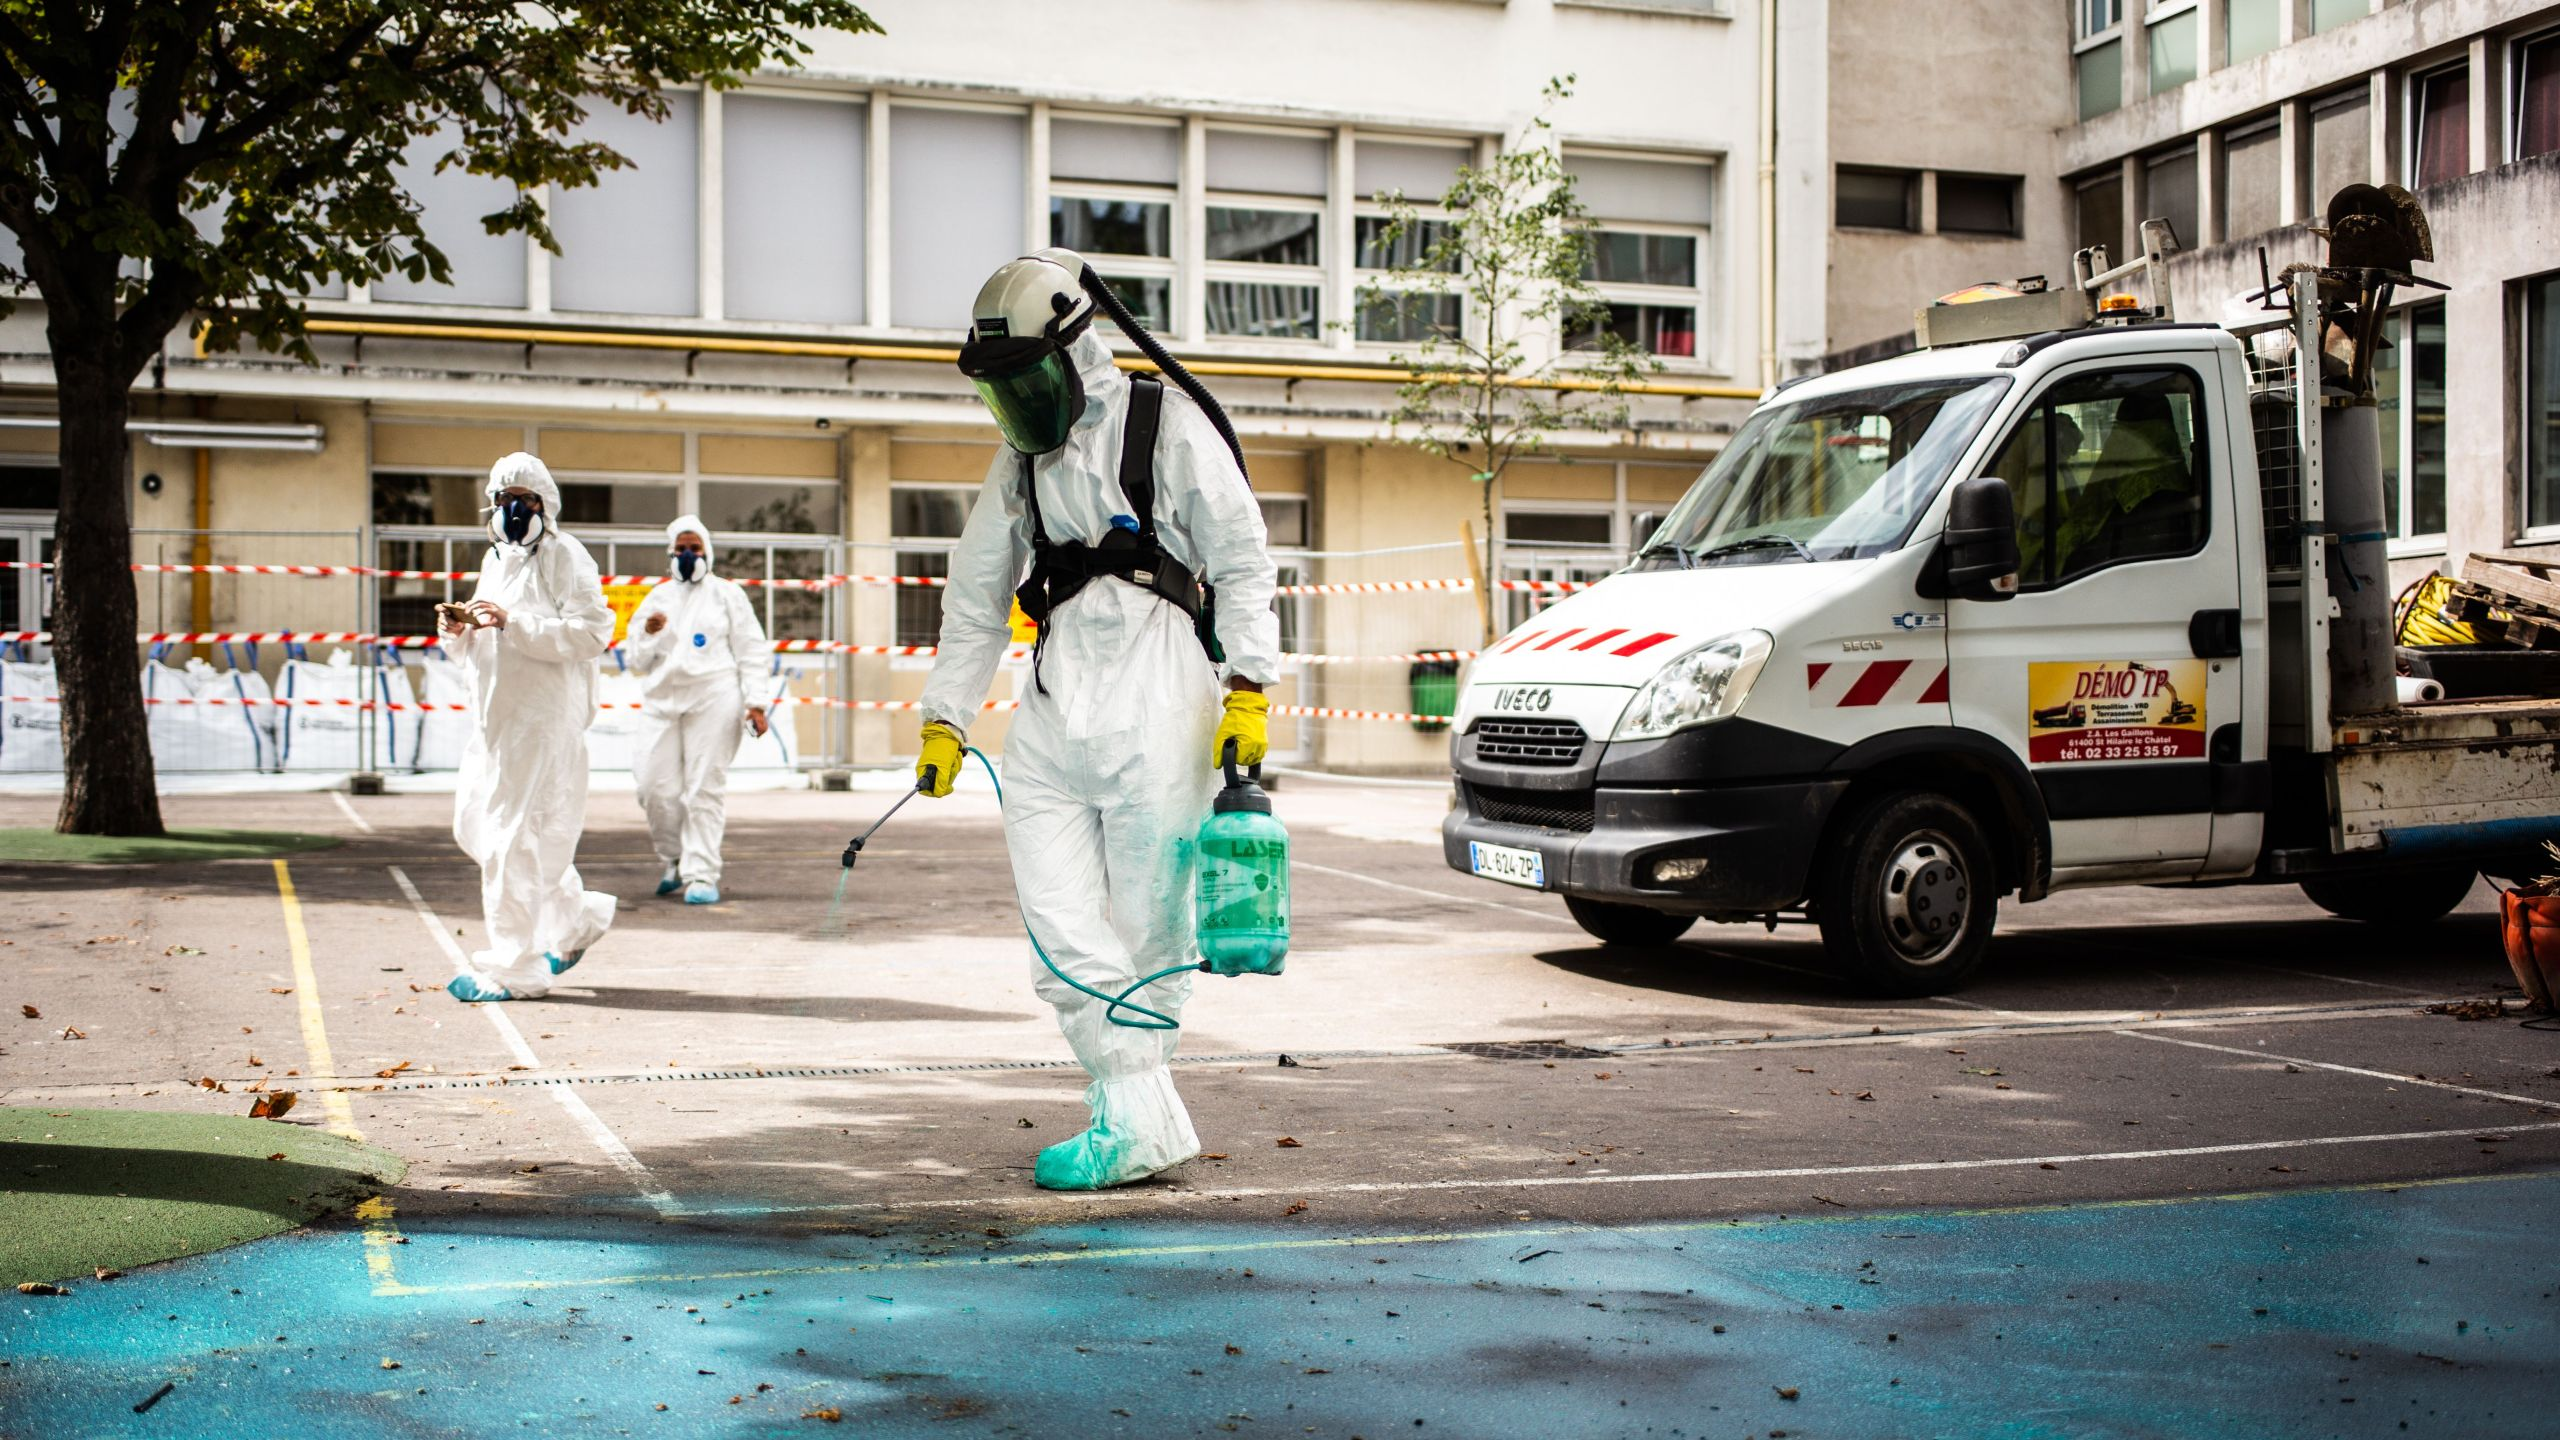 A worker sprays a gel on the ground to absorb lead as he takes part in a clean-up operation at Saint Benoit school near Notre-Dame cathedral in Paris during a decontamination work on Aug. 8, 2019. (Credit: MARTIN BUREAU/AFP/Getty Images)